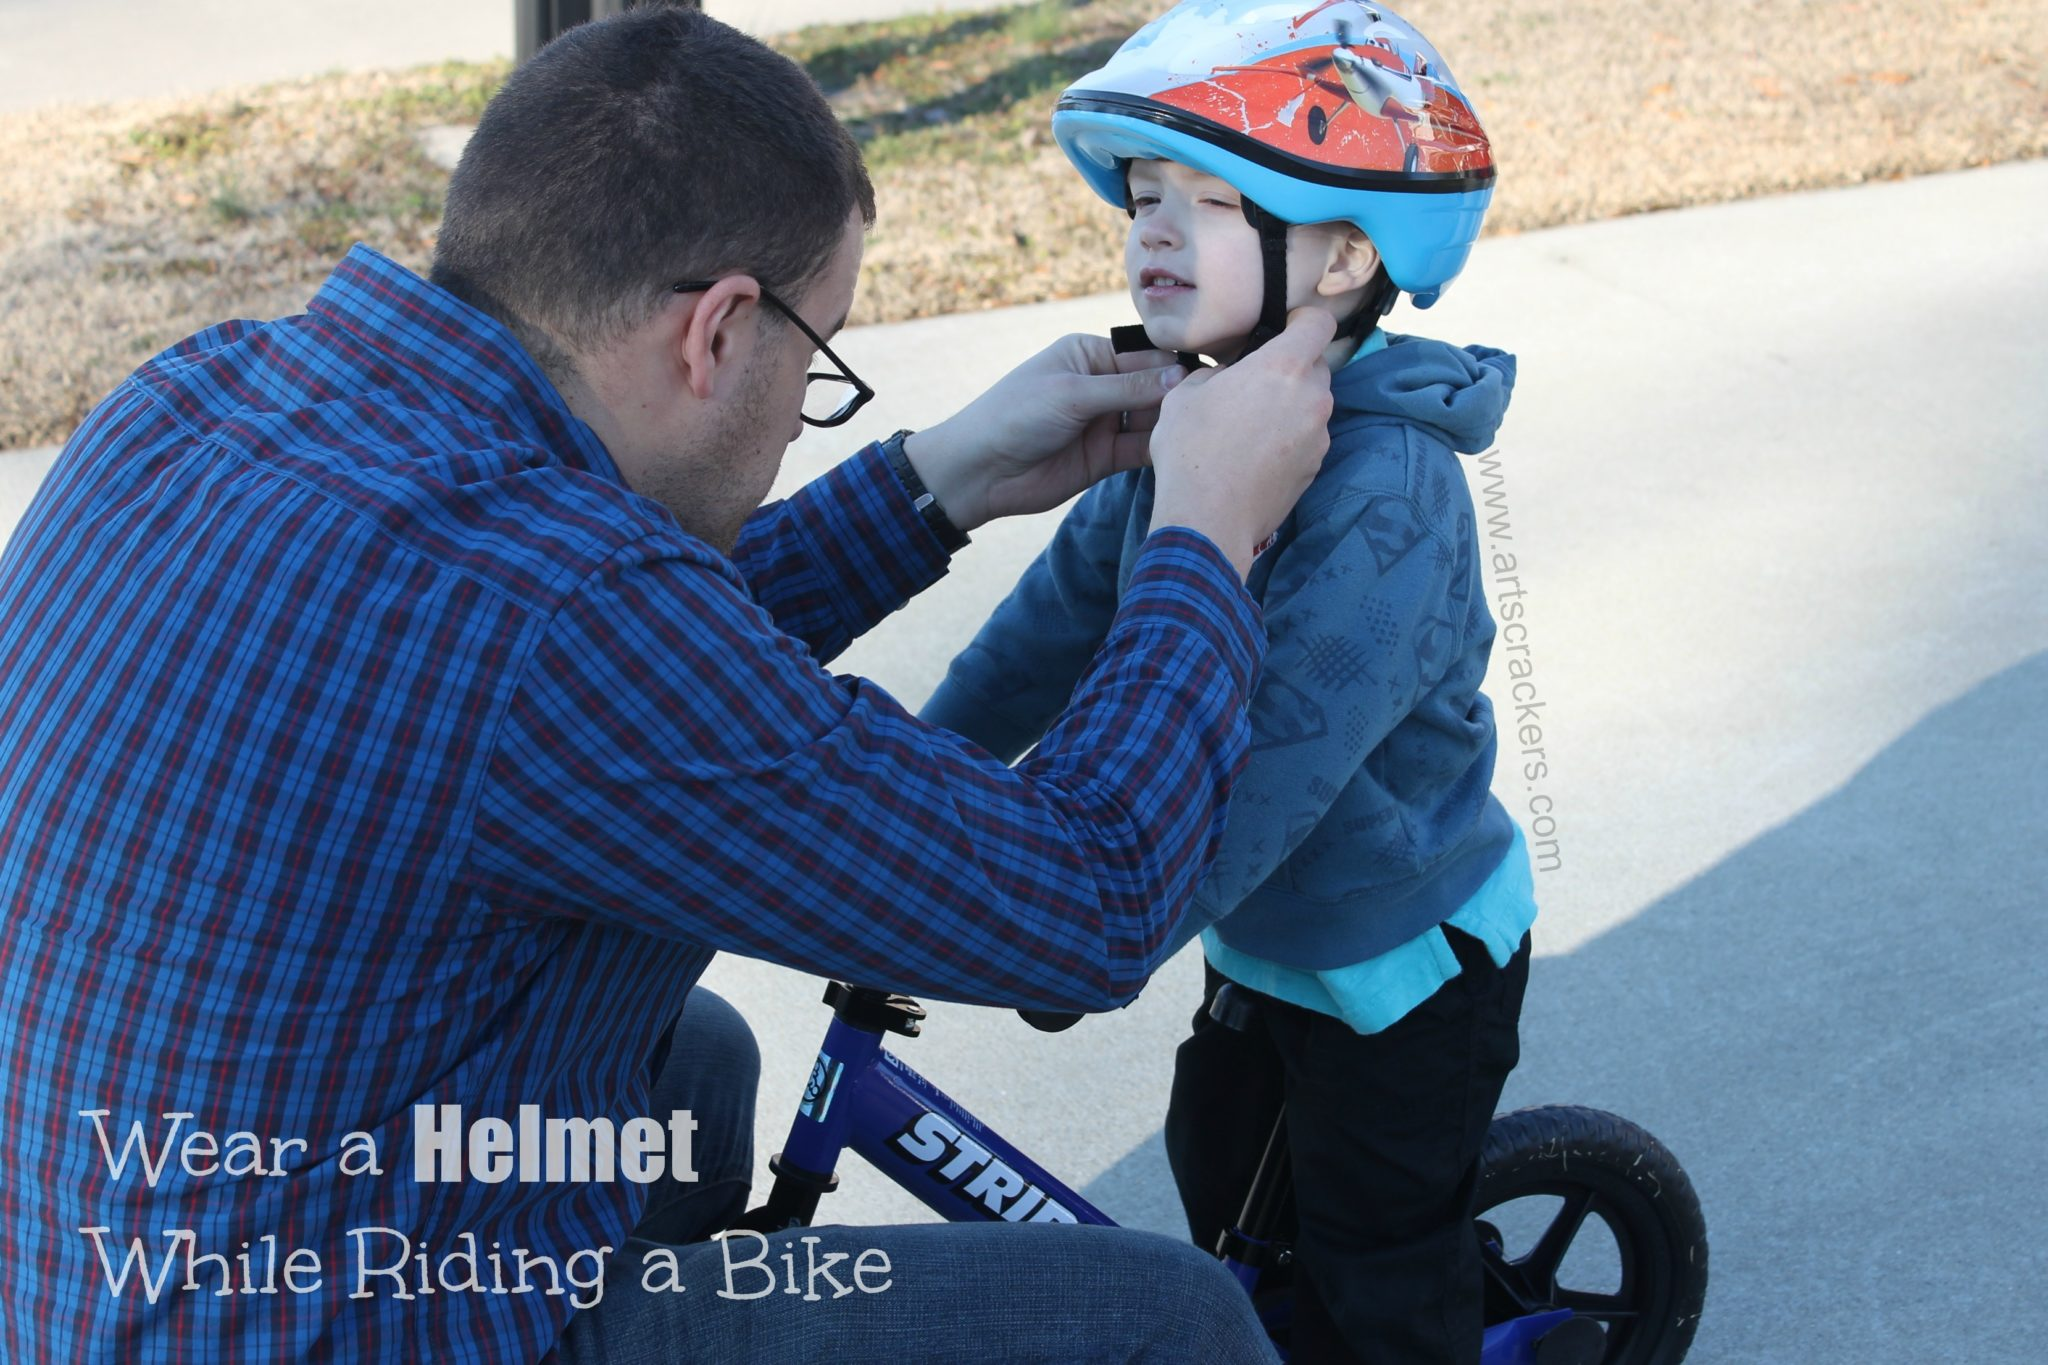 Always Wear a Helmet While Riding a Bike